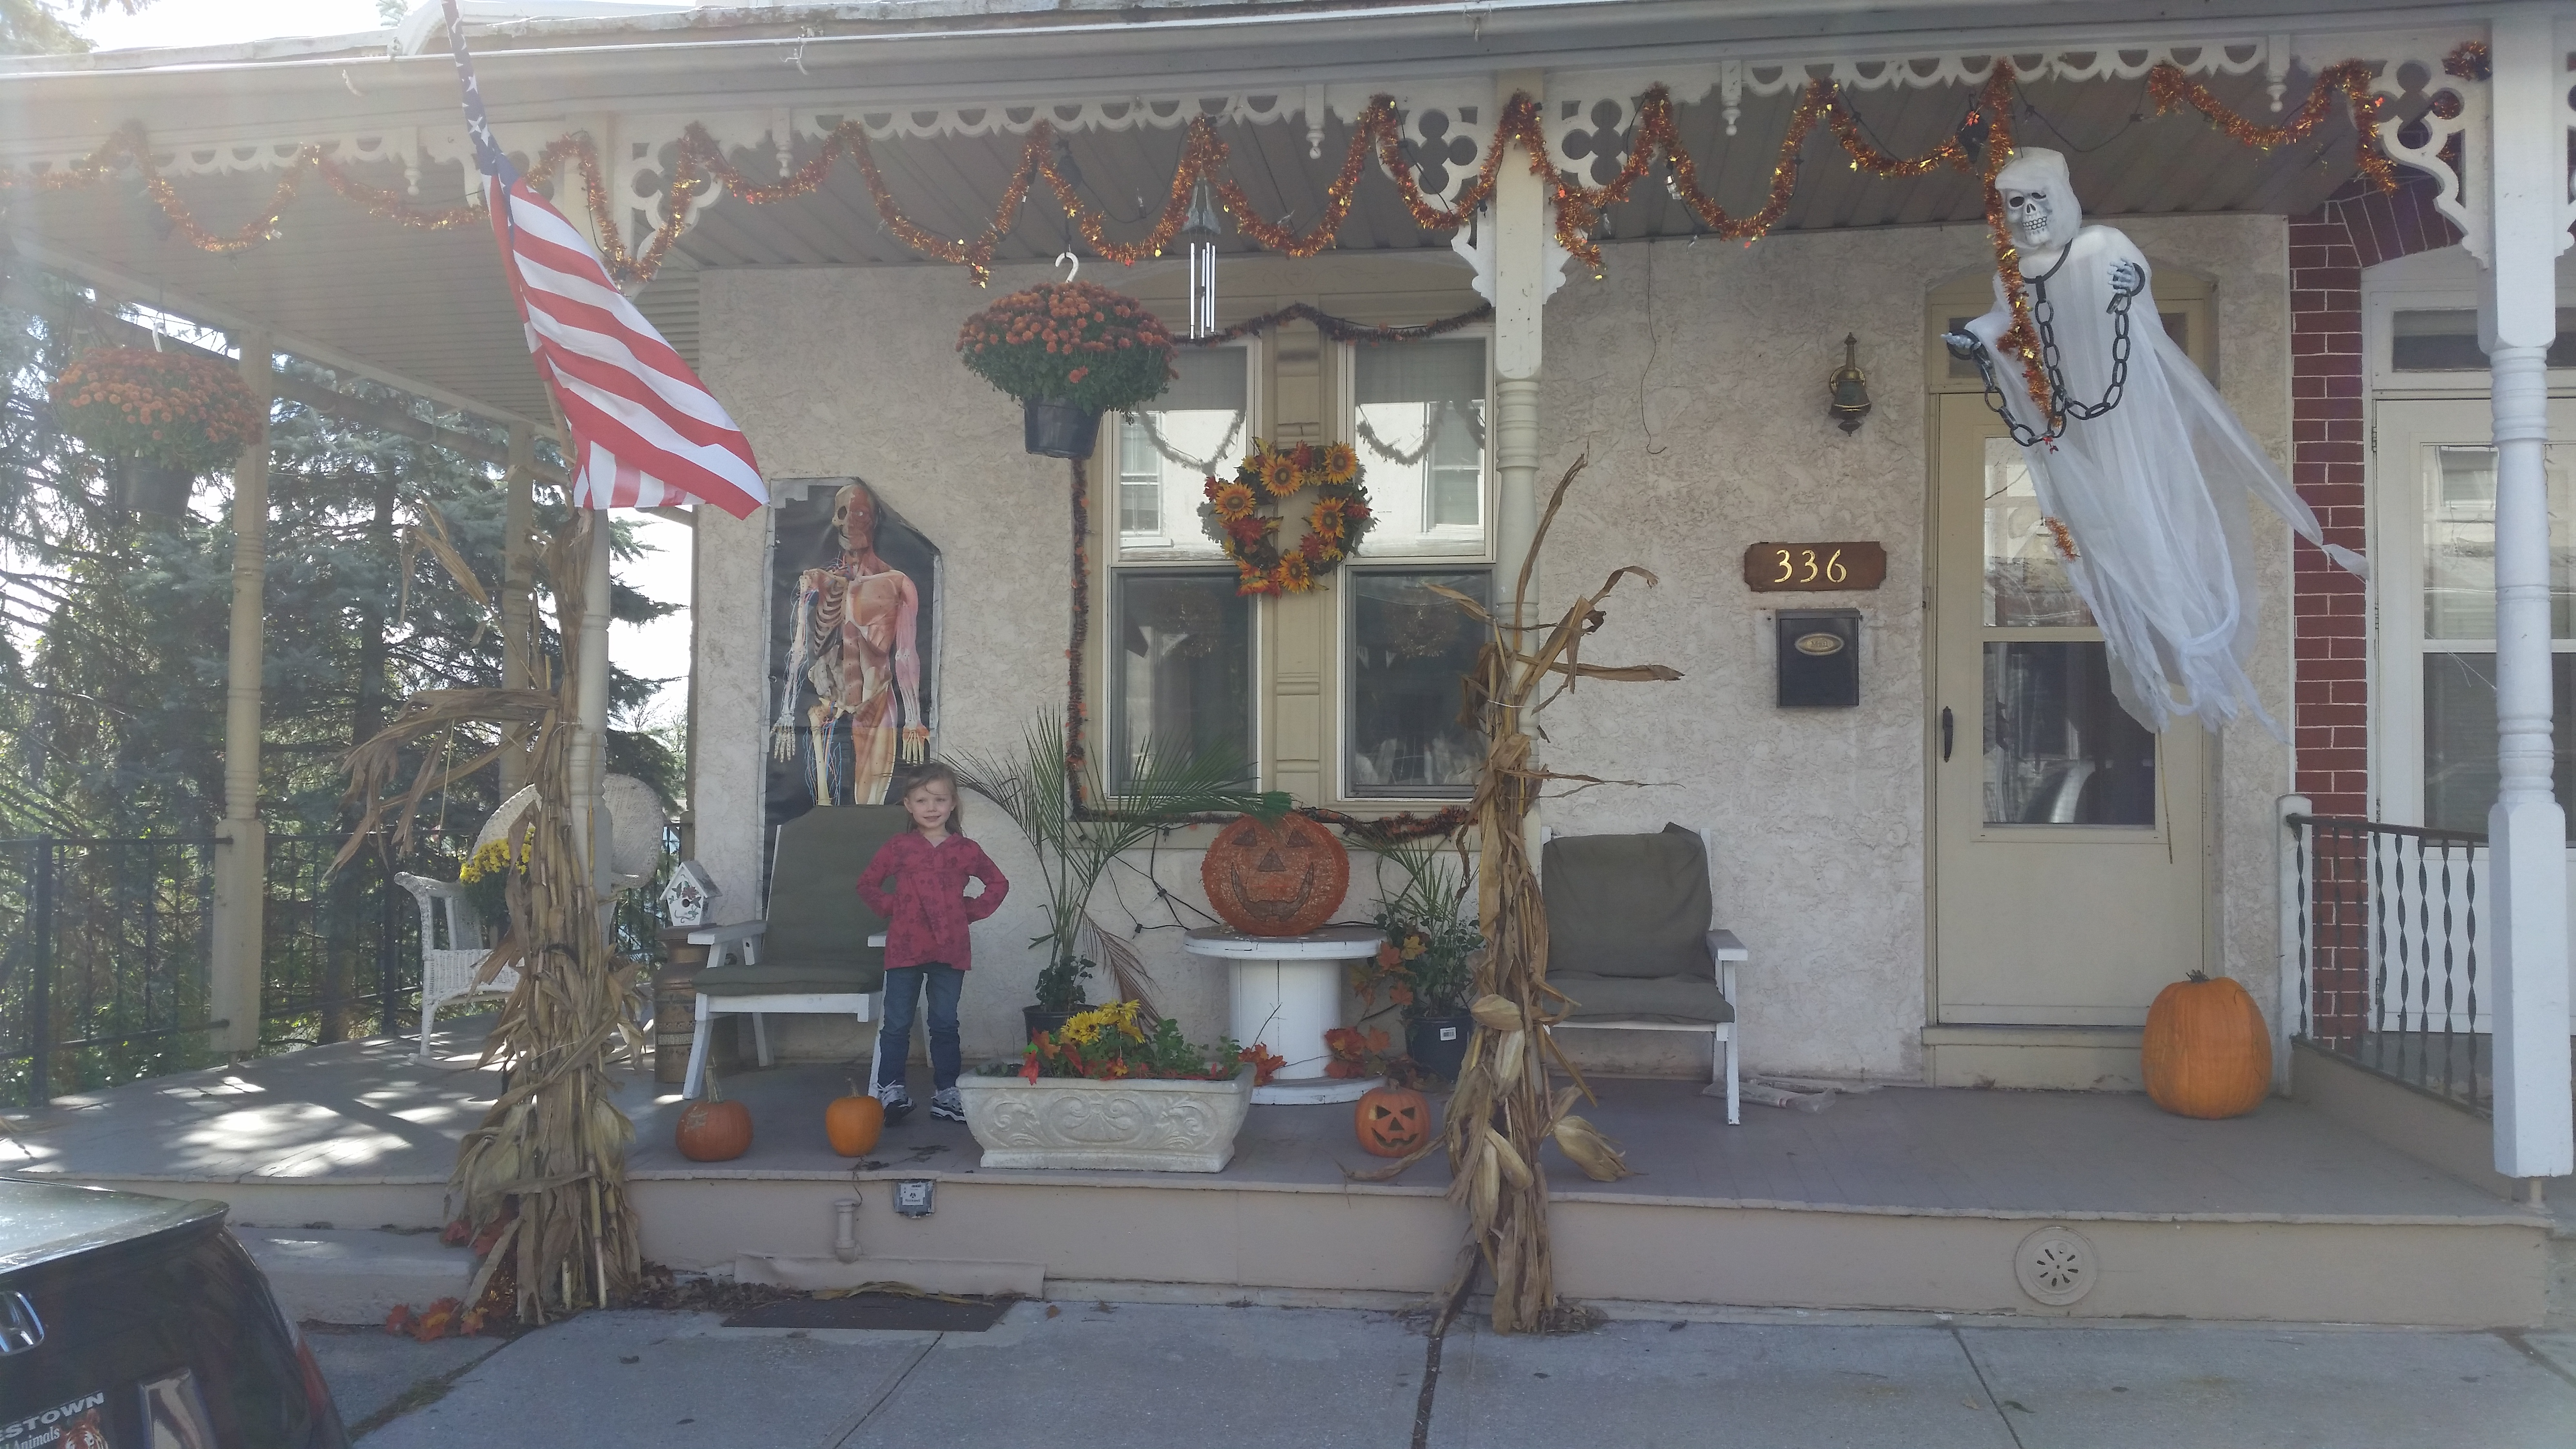 Moms house decorated for Halloween.